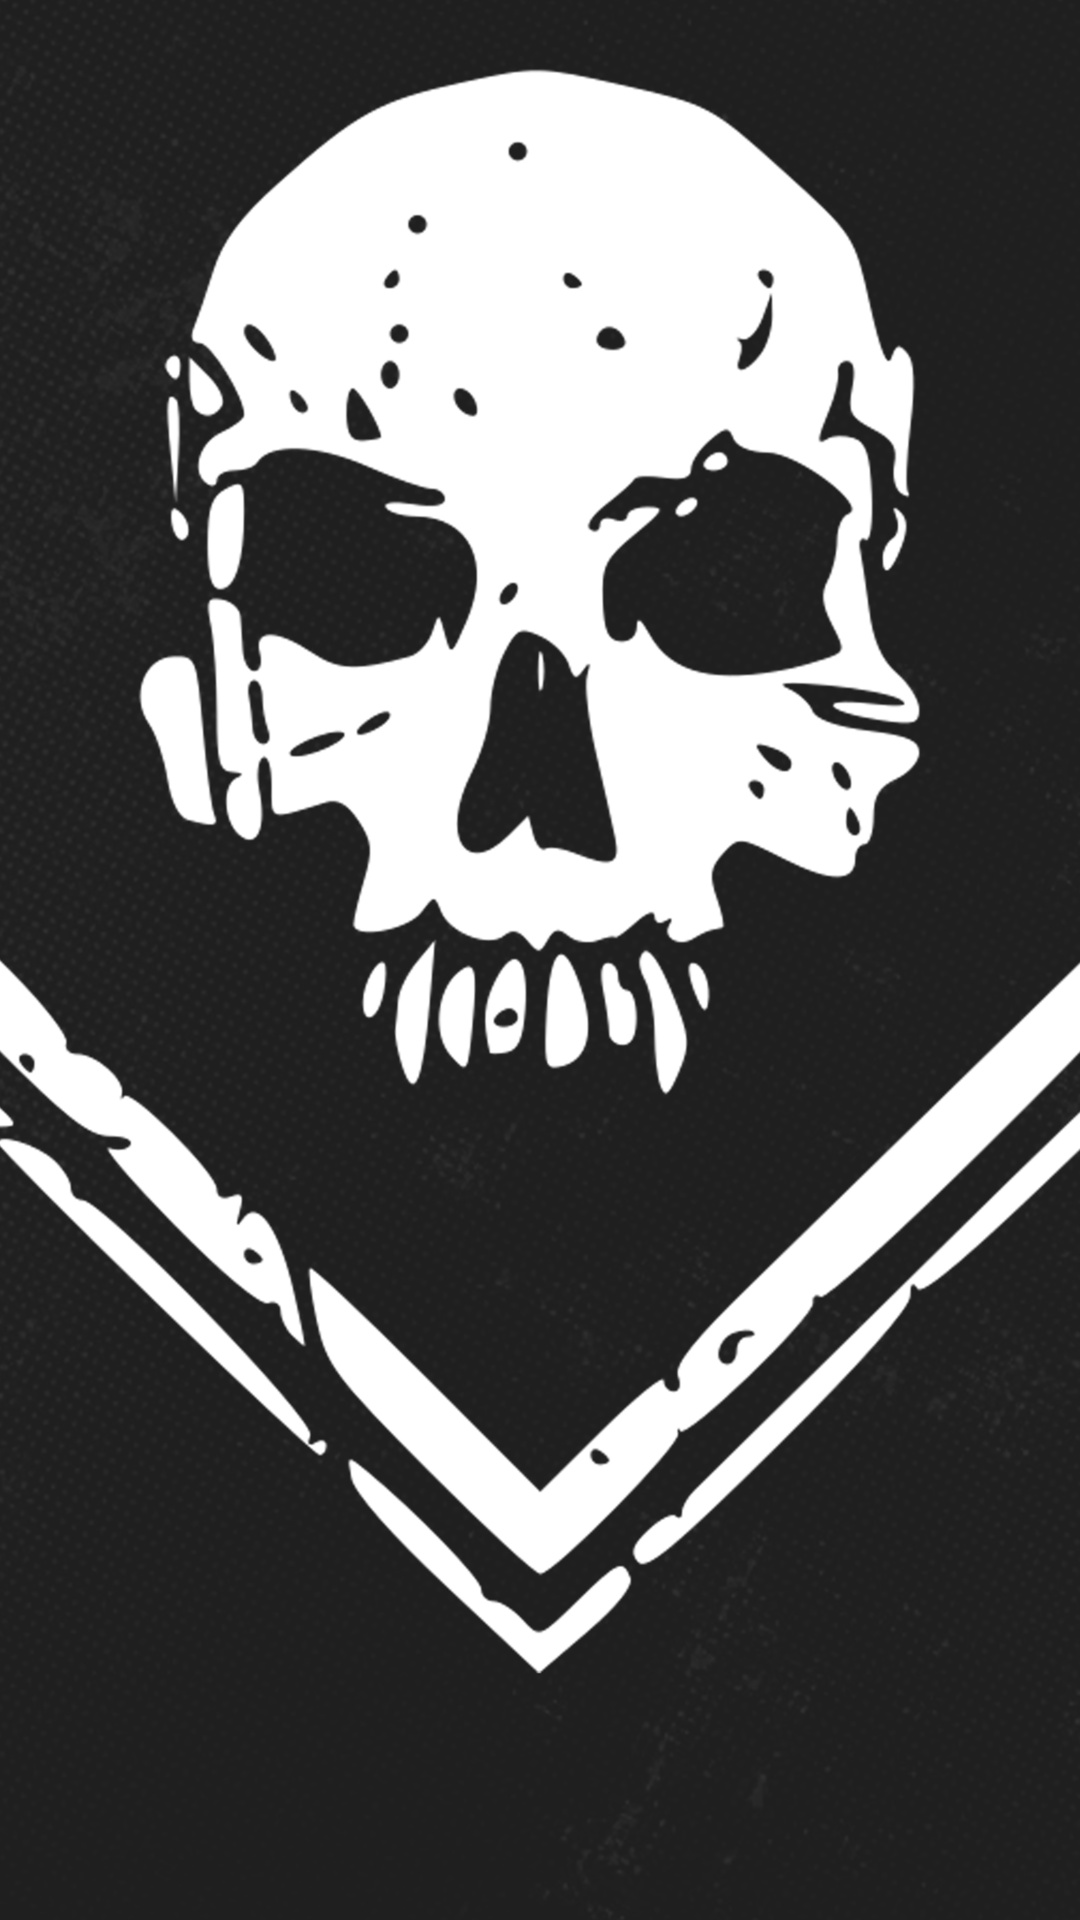 1080x1920 Dead By Daylight Logo Minimalist Iphone 7 6s 6 Plus Pixel Xl One Plus 3 3t 5 Hd 4k Wallpapers Images Backgrounds Photos And Pictures Анимированное logo игры dead by daylight для программы wallpaper engine. hdqwalls